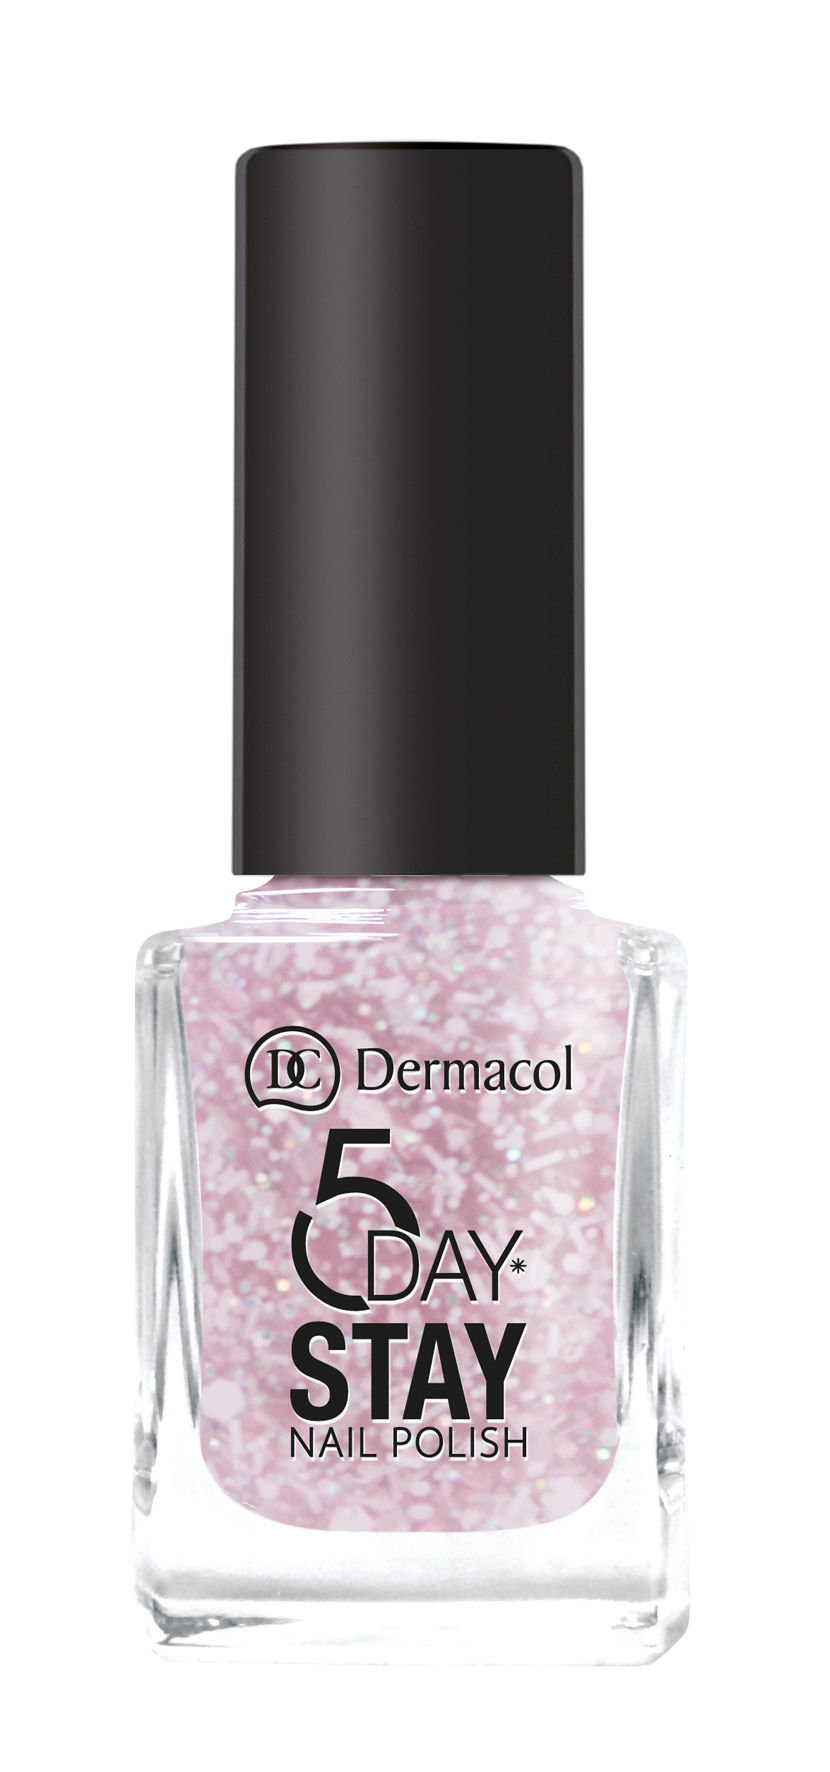 Dermacol 5 Day Stay Cosmetic 11ml 05 Lucky Charm